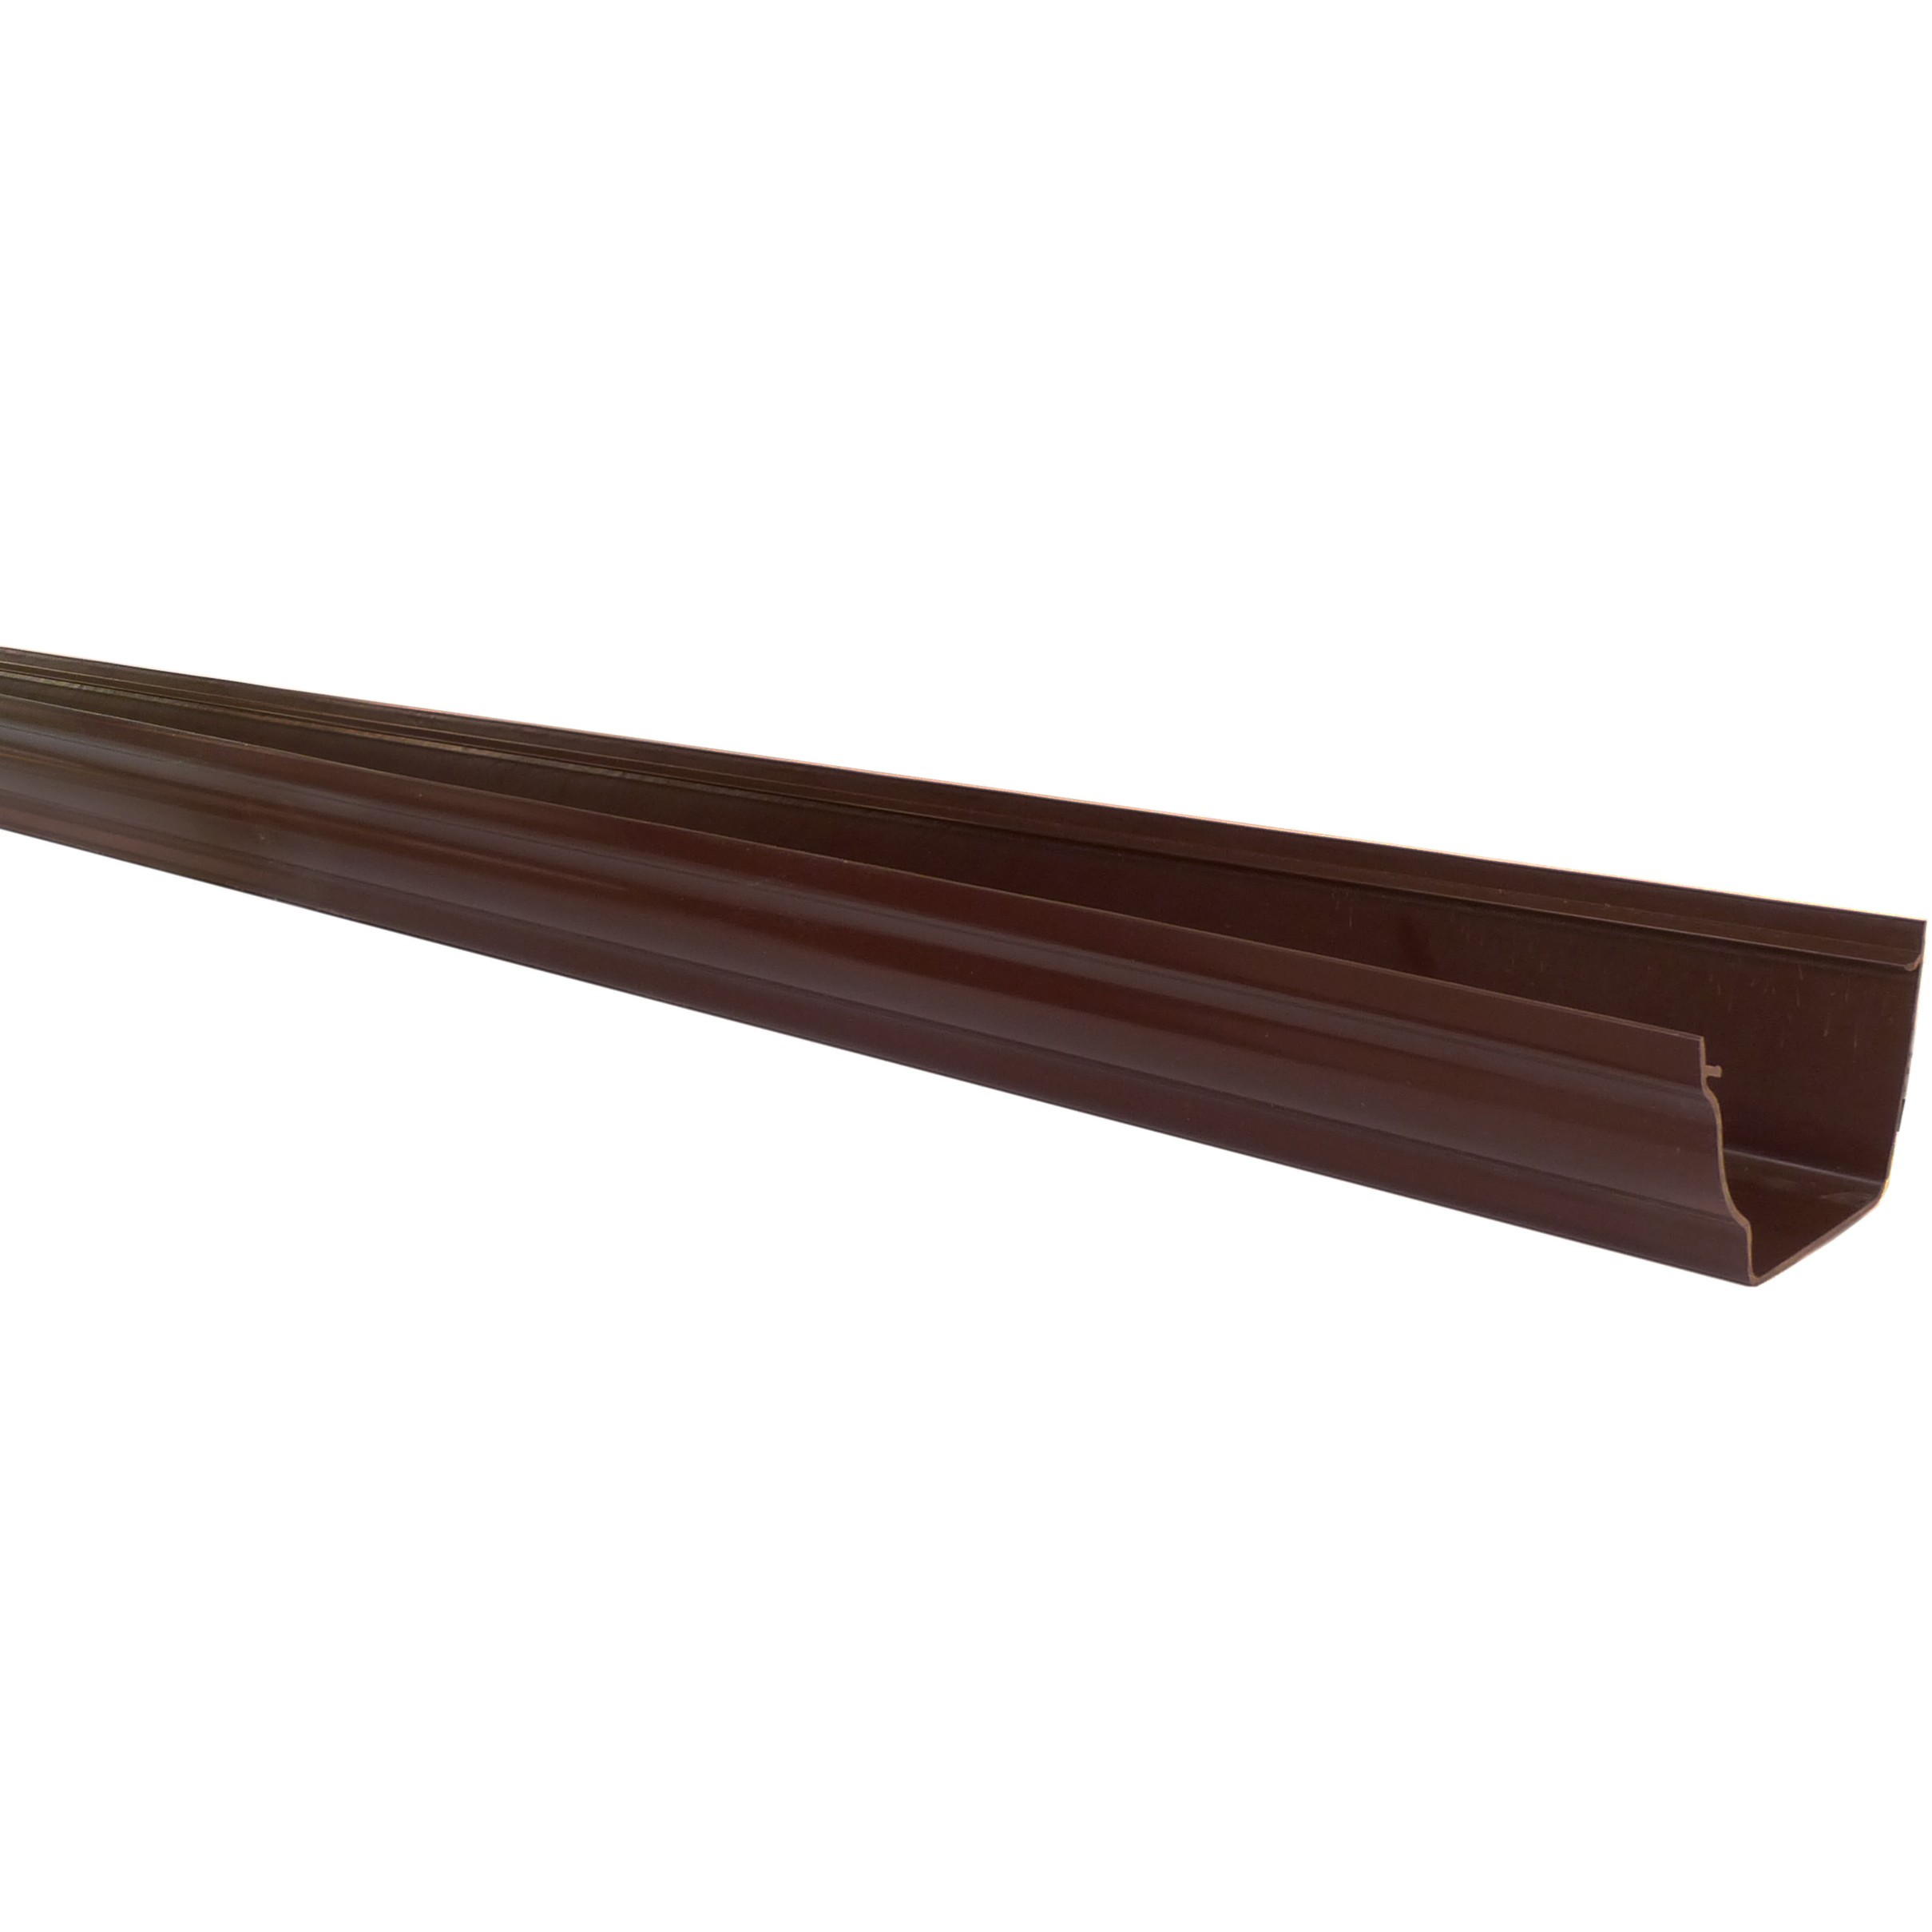 Polypipe 117mm Sovereign High Capacity Gutter - Brown, 4 metre